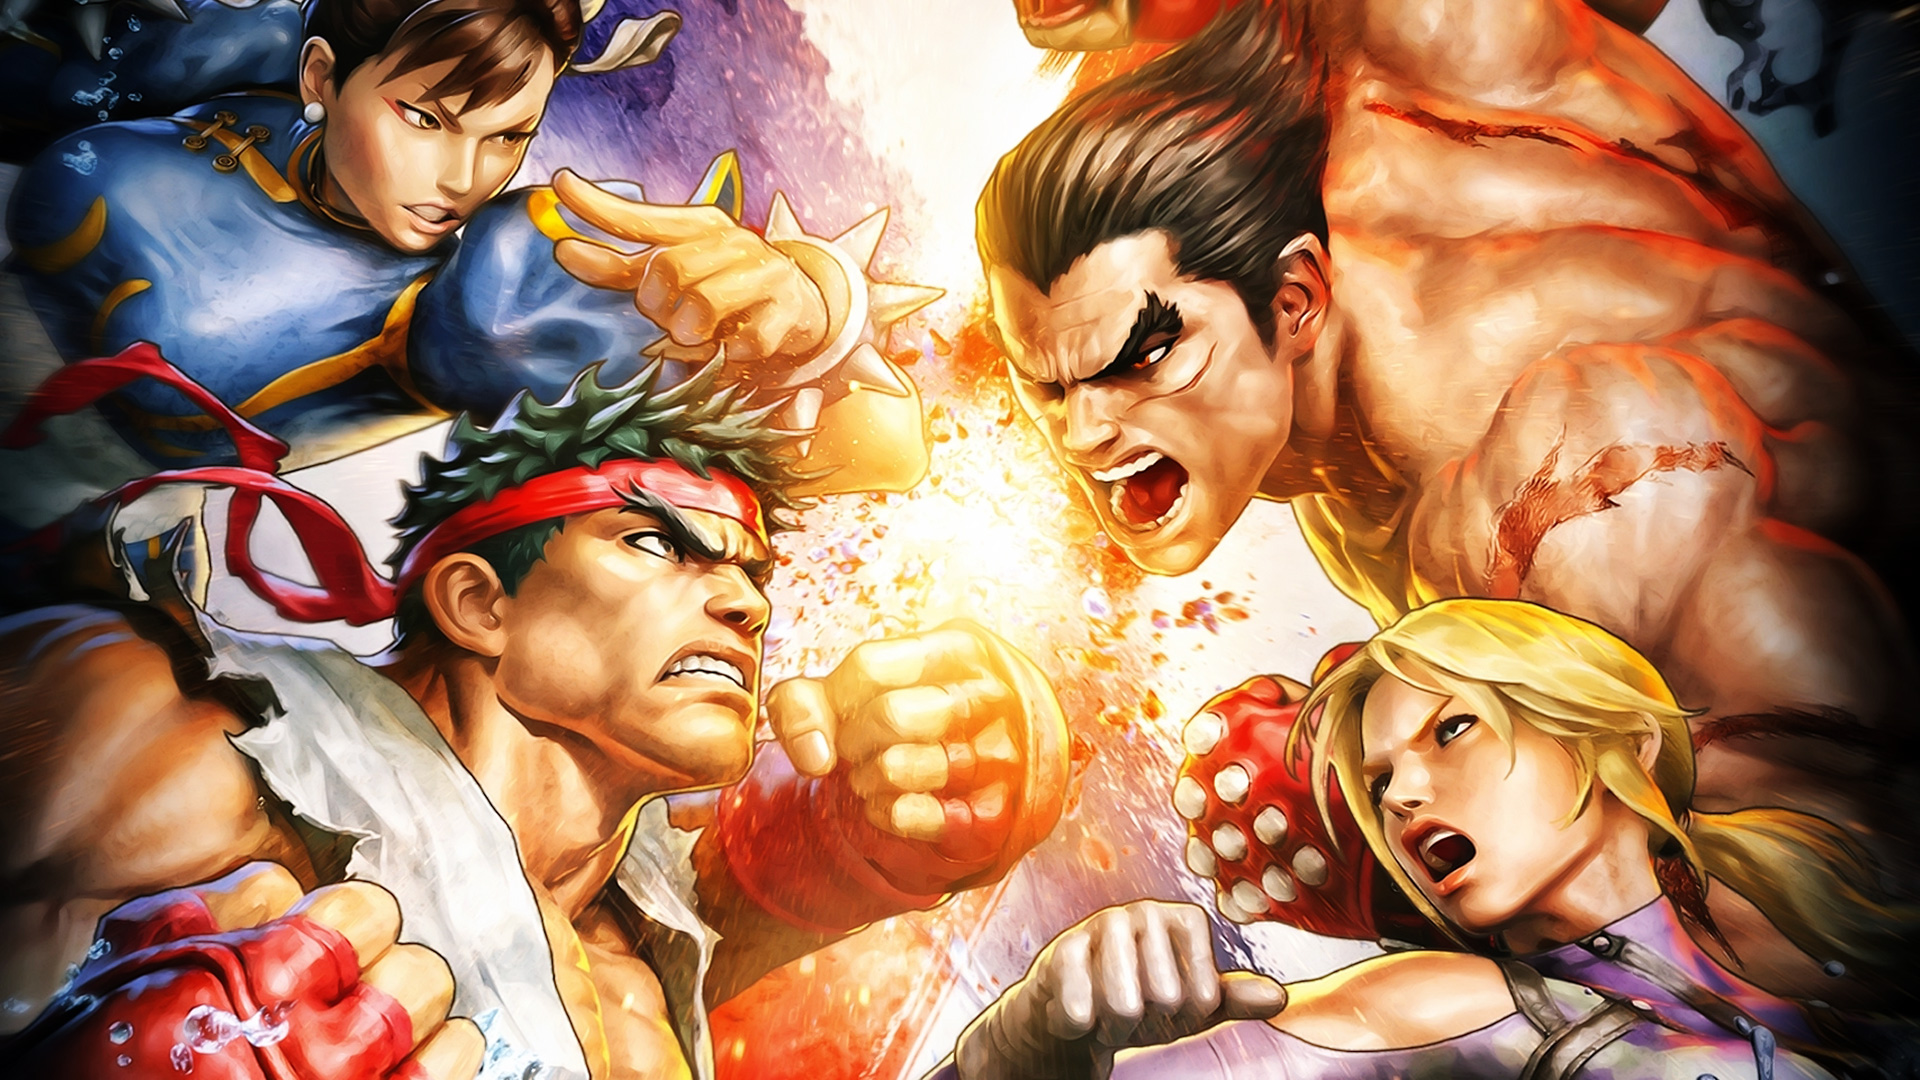 Free Street Fighter X Tekken Wallpaper in 1920x1080